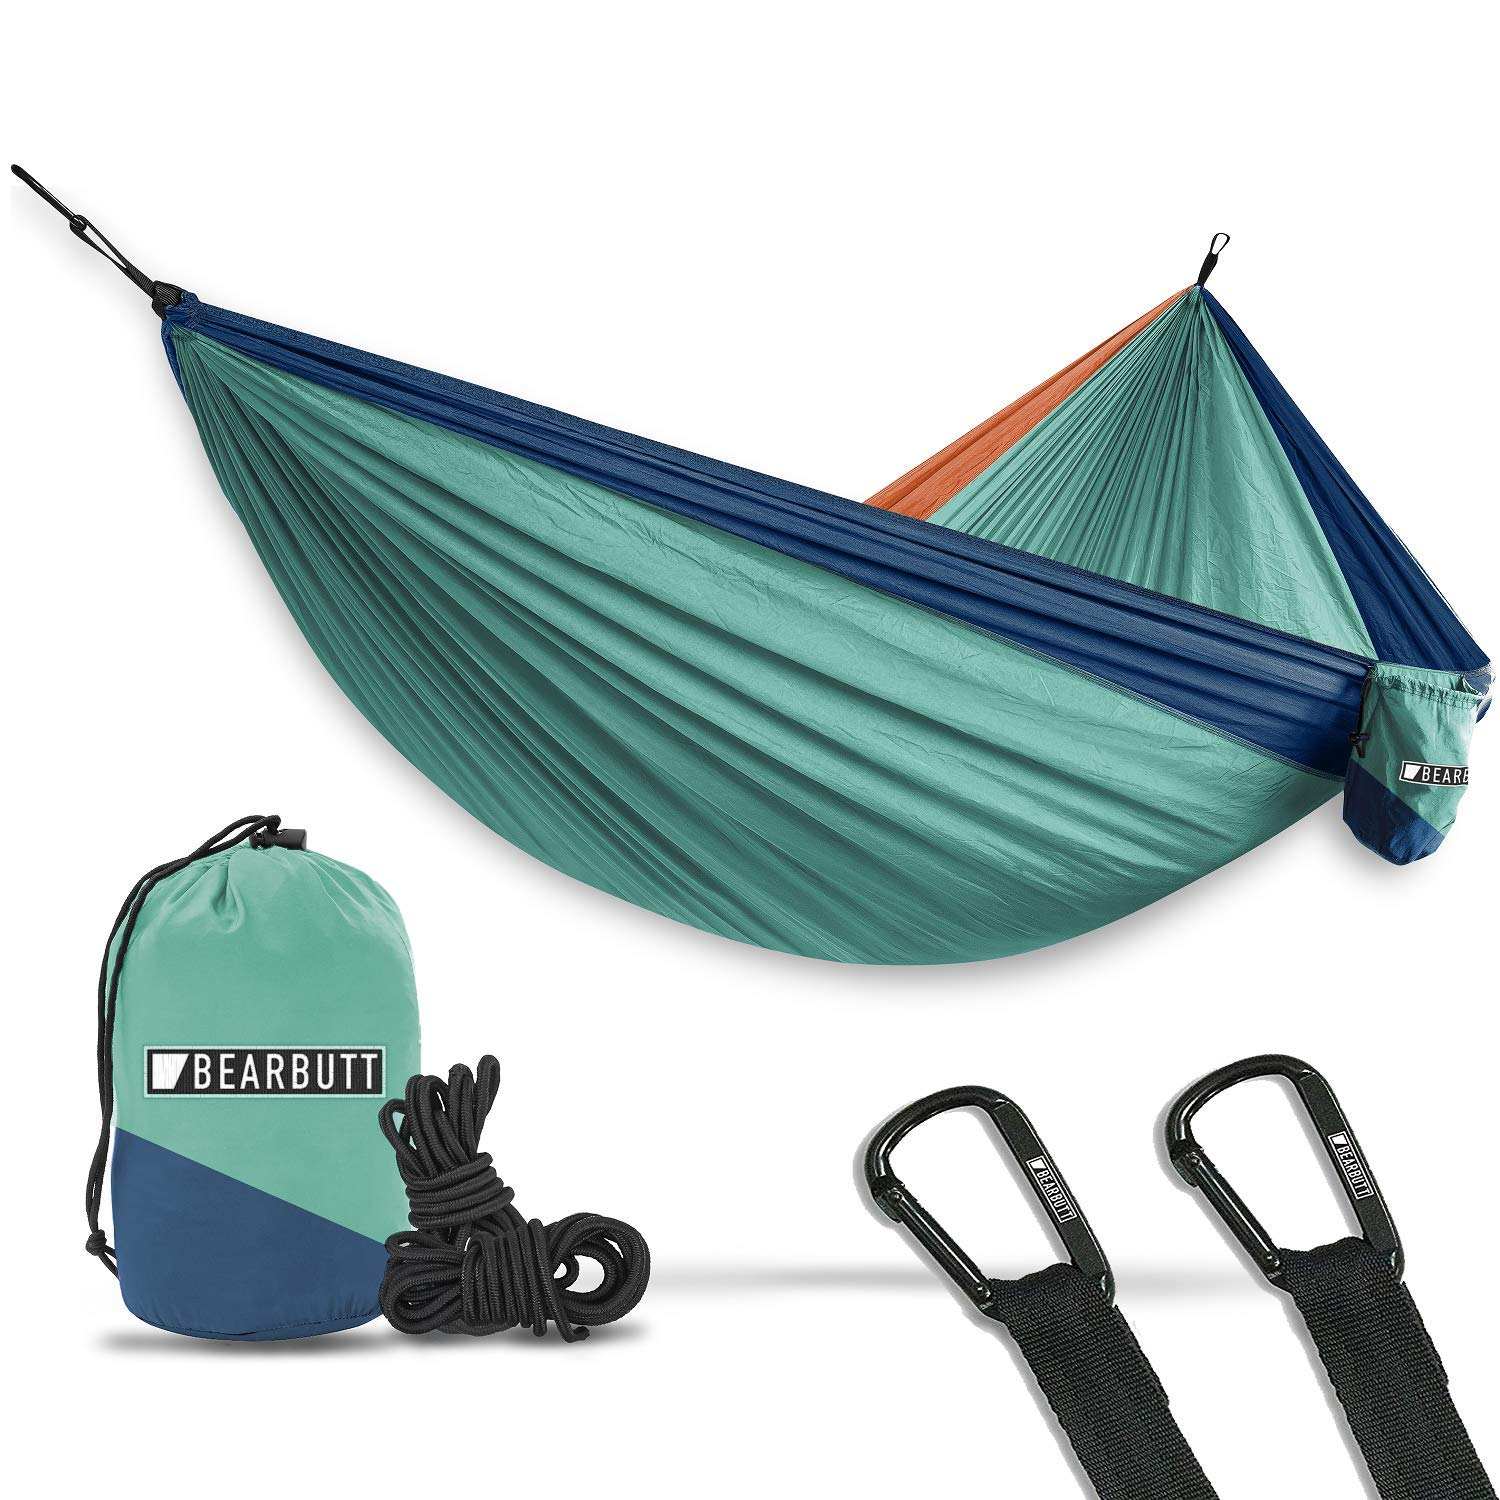 9. Bear Butt Hammock - The Bear Butt Double hammock ($30) is lightweight but strong at the same time, maxing out at a 500-pound load. You can easily fit a significant other for some romantic star gazing or afternoon book reading. The Bear Butt still packs down small to the size of a Nalgene water bottle and comes with all the tools you'd need to set yourself up between a pair of trees.